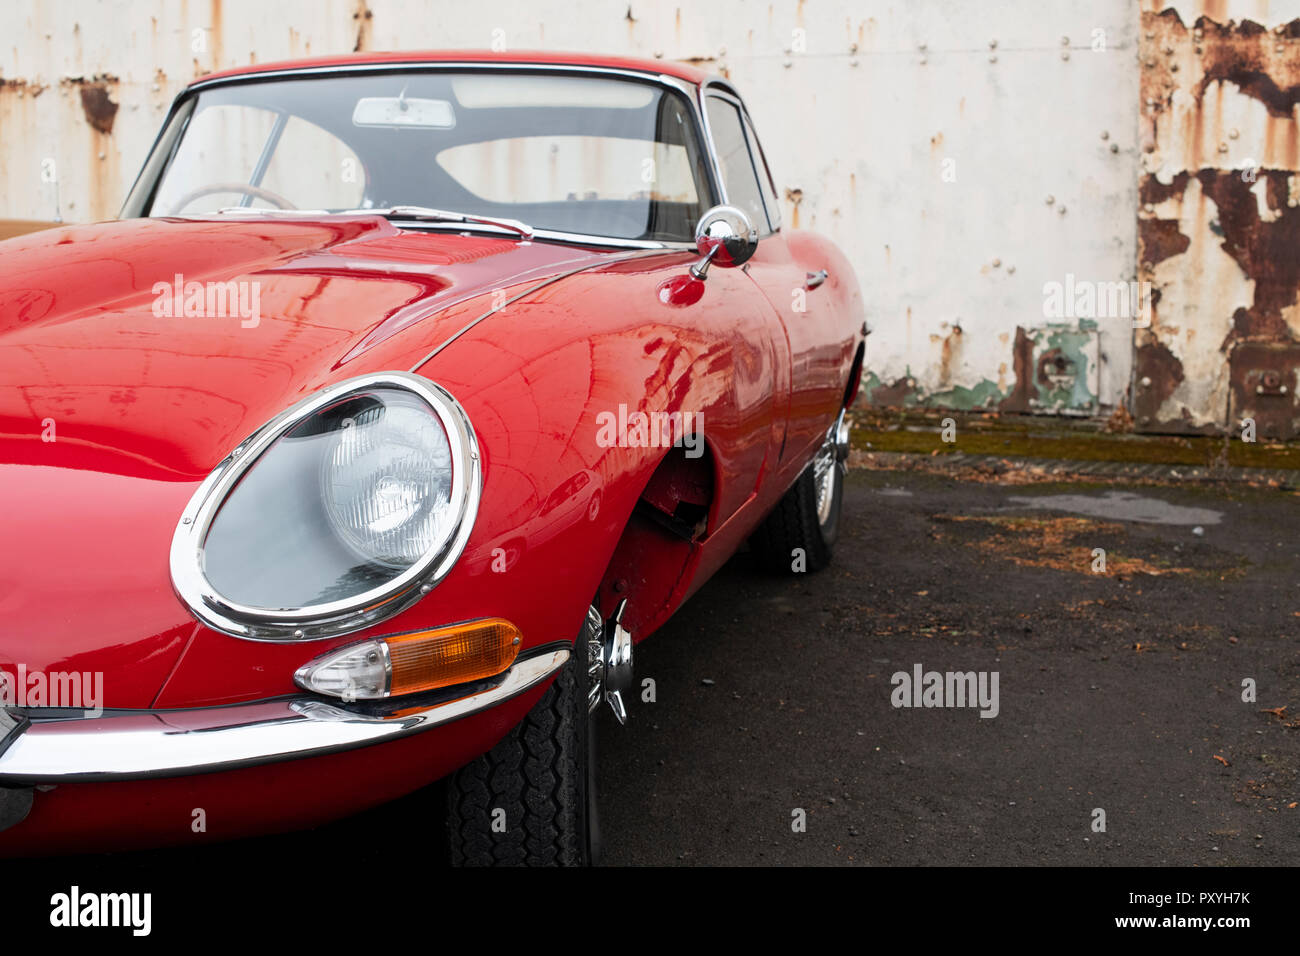 1964 Jaguar E Type at Bicester heritage centre autumn sunday scramble event. Bicester, Oxfordshire, UK Stock Photo